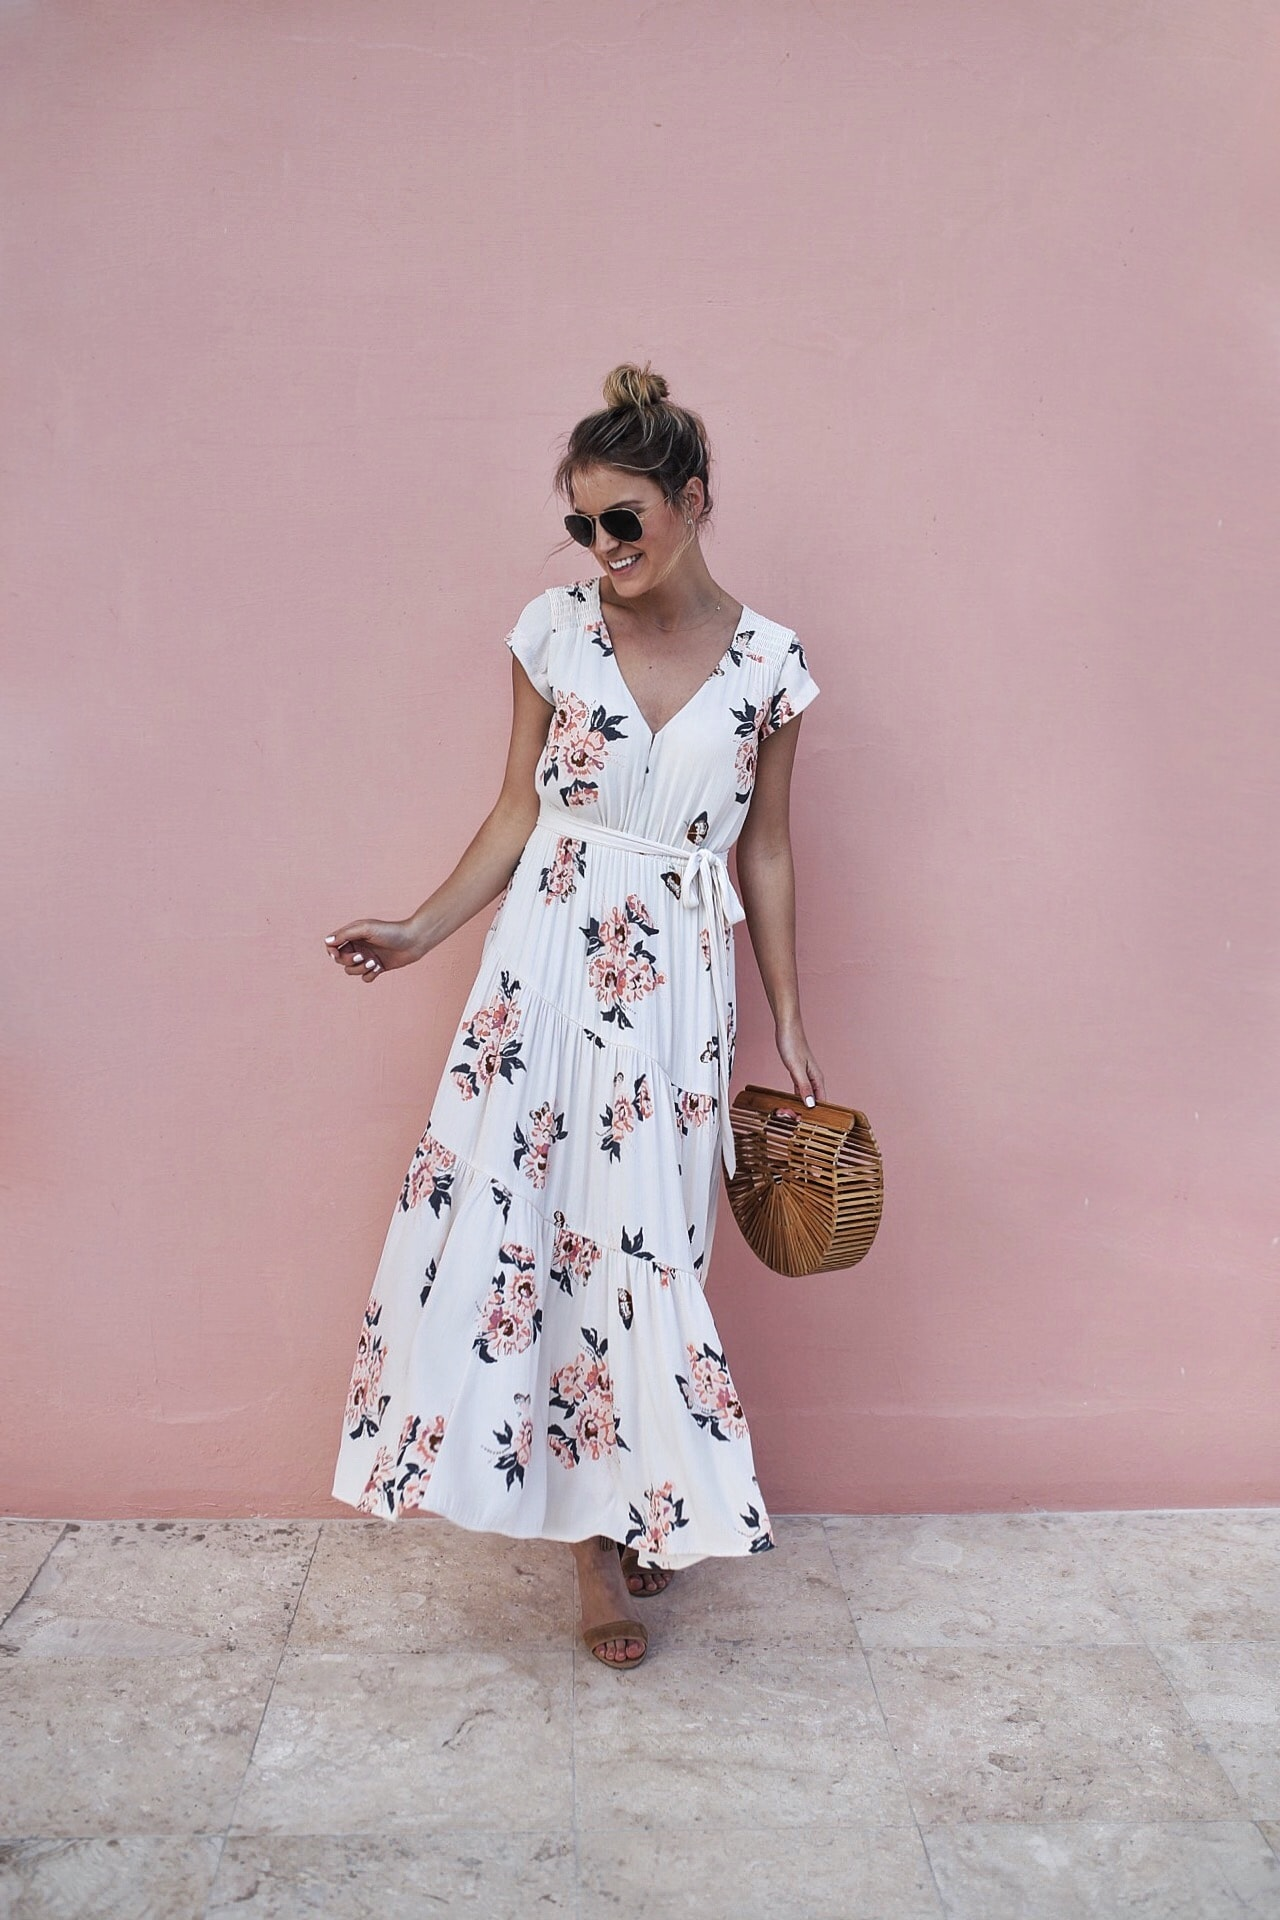 59e0bee818f0 Free People Floral Midi Dress - Styled Snapshots